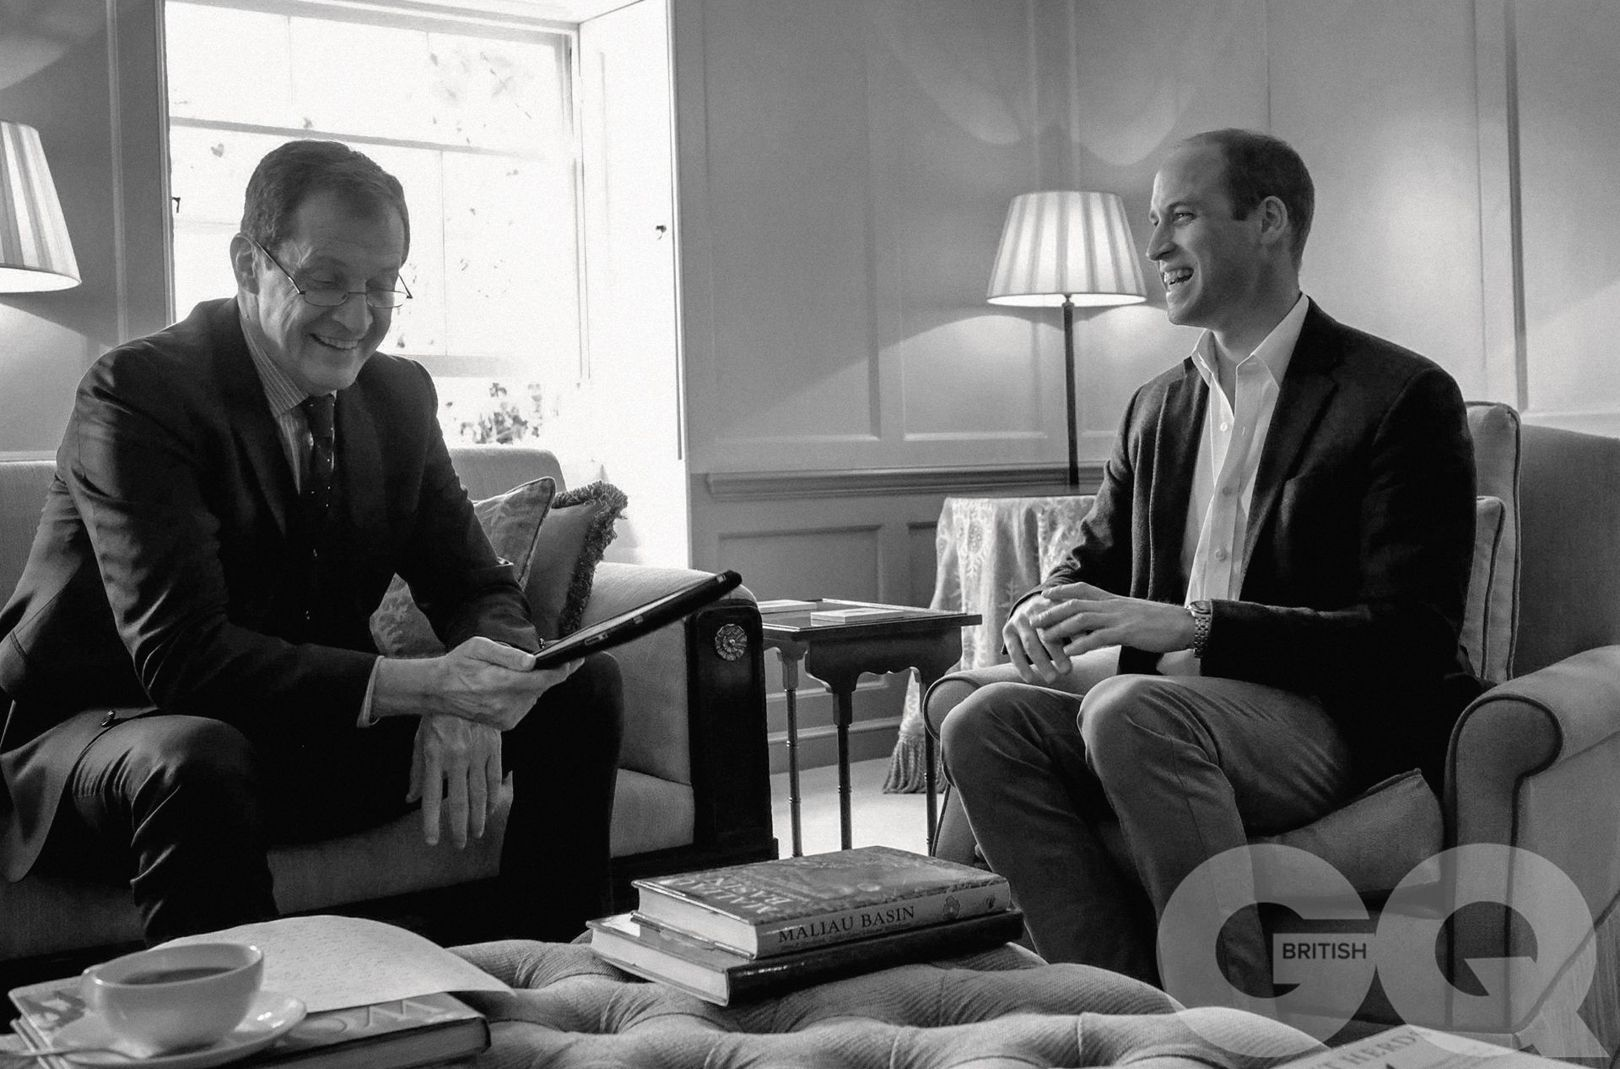 Few were more shocked than our own colleagues when news hit of the Prince William GQ interview